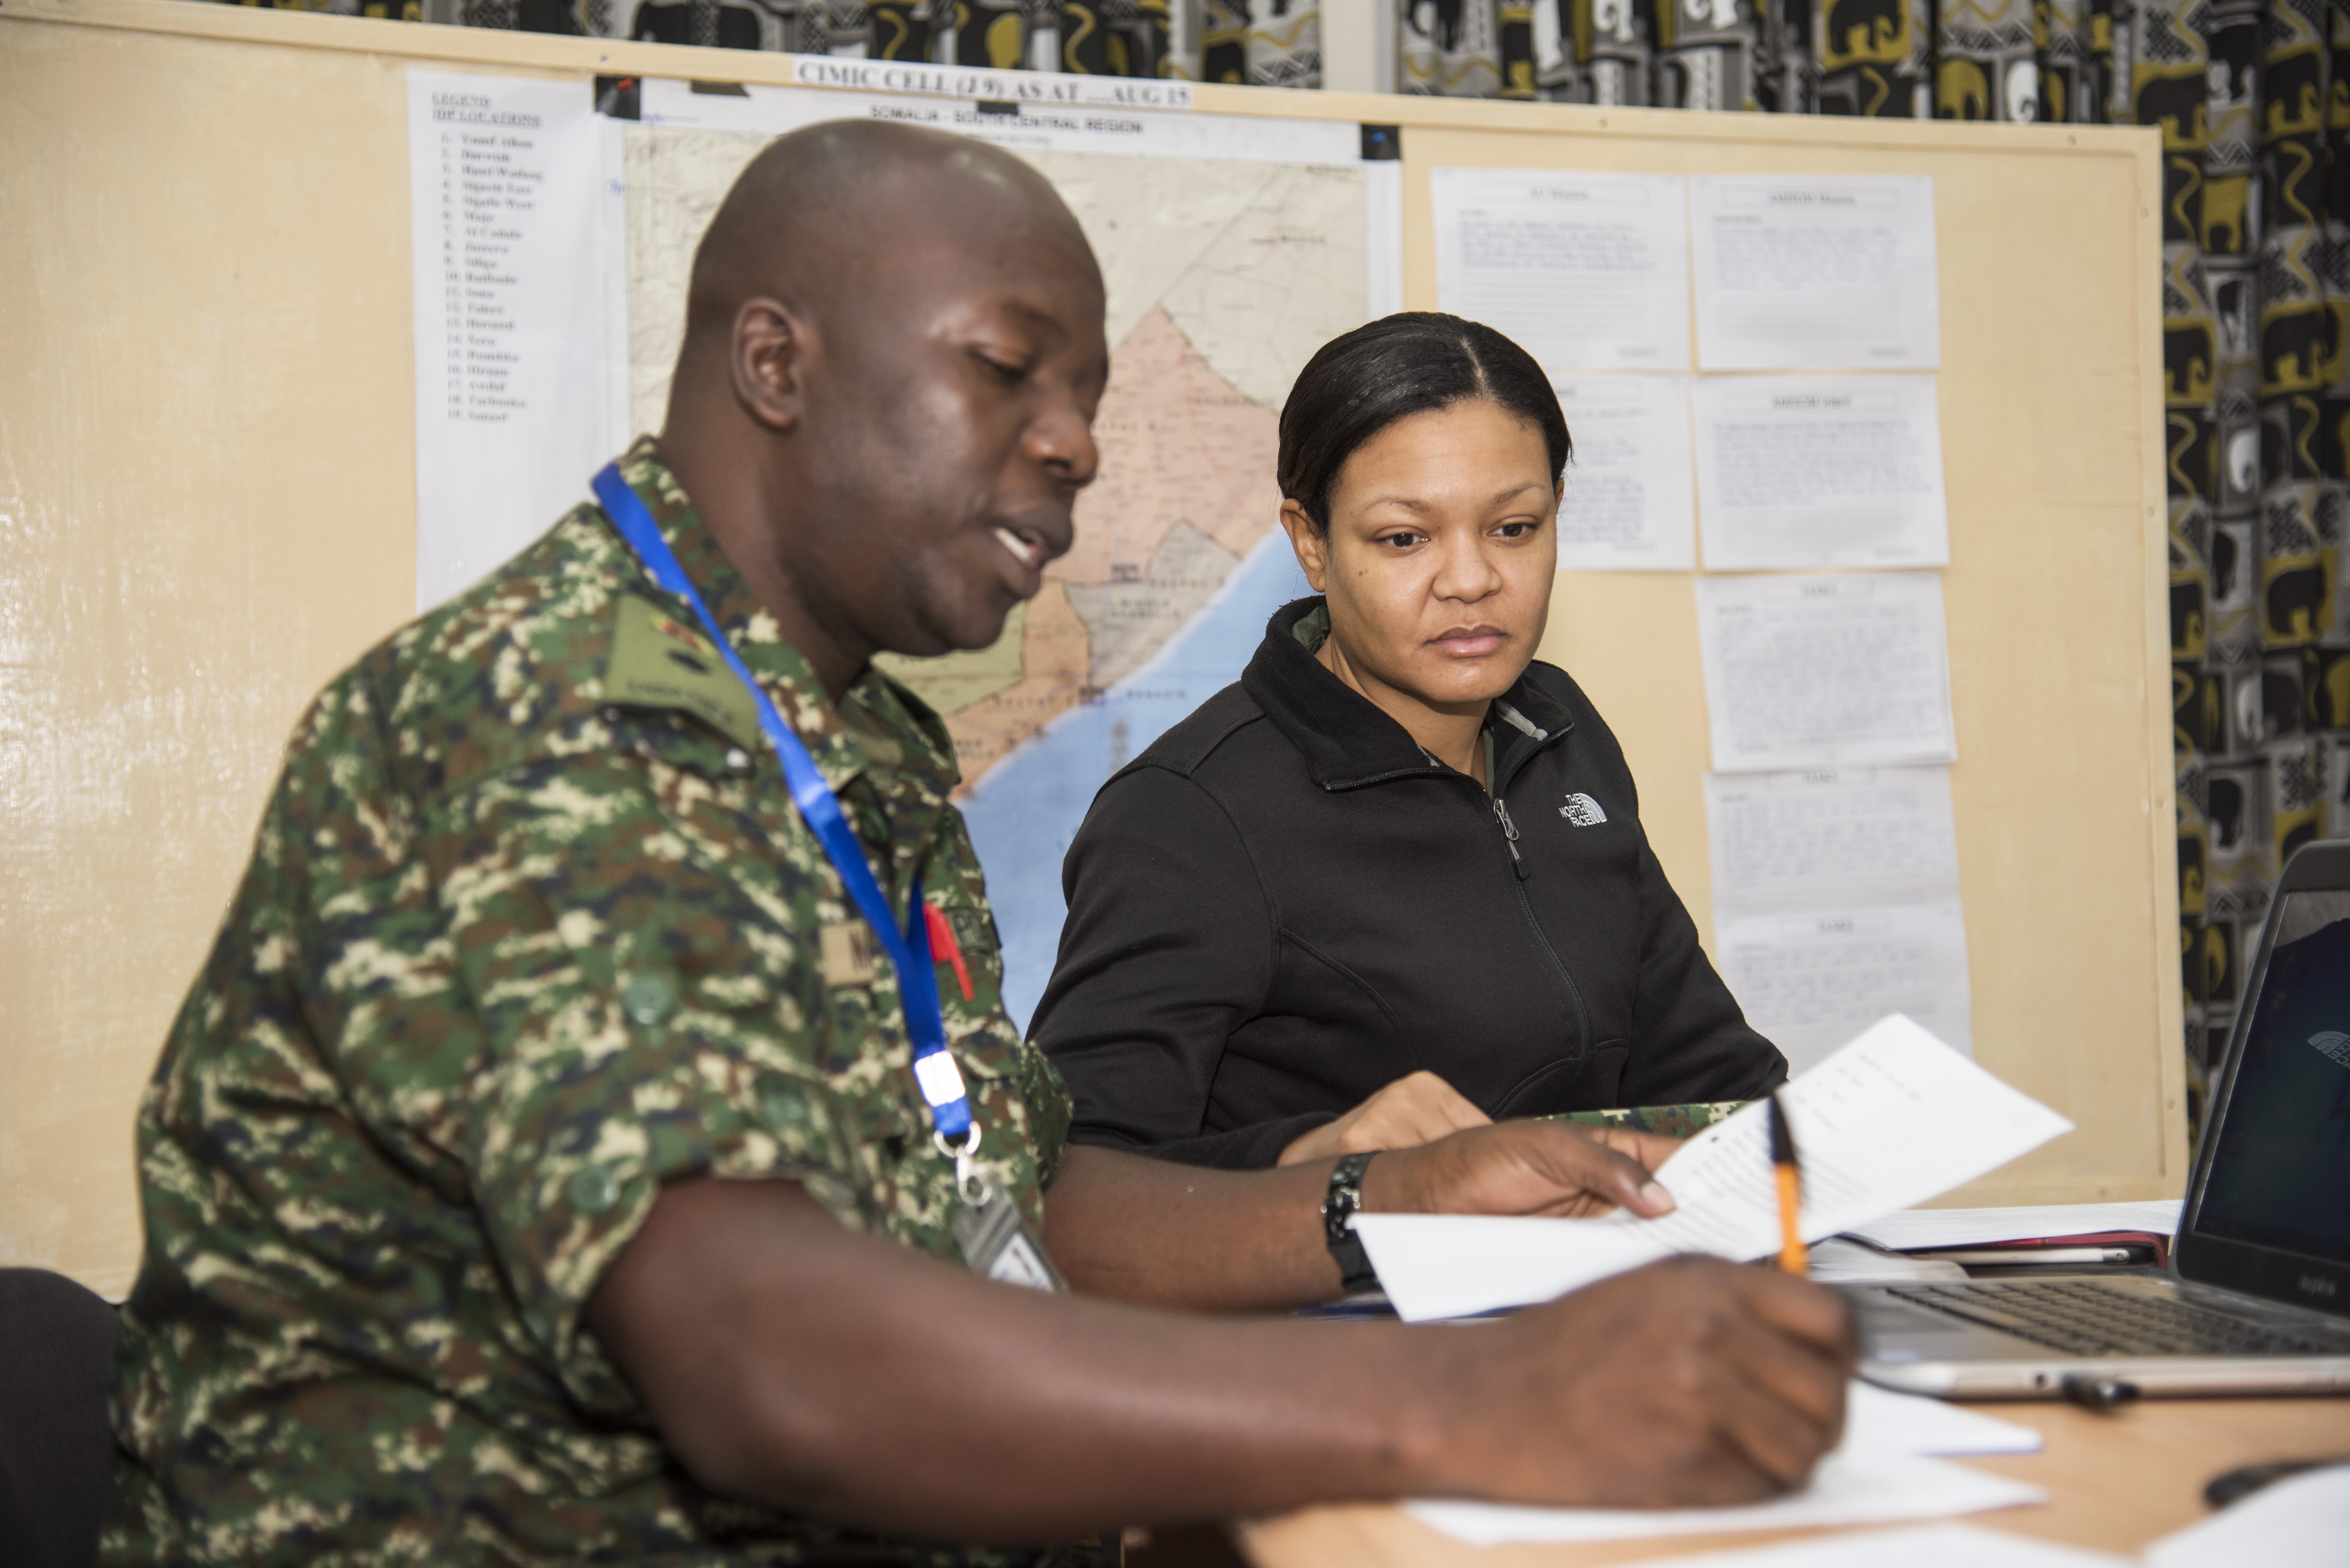 Joyce Craig, Africa Contingency Operations Training & Assistance (ACOTA) African Union Mission in Somalia (AMISOM) Force Headquarters training course instructor, right, works with a Uganda People's Defense Force officer on how to plan Civil military cooperation activities at the International Peace Support Training Center in Nairobi, Kenya, Aug. 26, 2015. The course was designed to prepare staff officers from AMISOM contributing countries for possible assignment to AMISOM Force Headquarters, and part of that training included organizing civil military operations to build support and confidence among the Somali people. (U.S. Air Force photo by Staff Sgt. Nathan Maysonet/released)